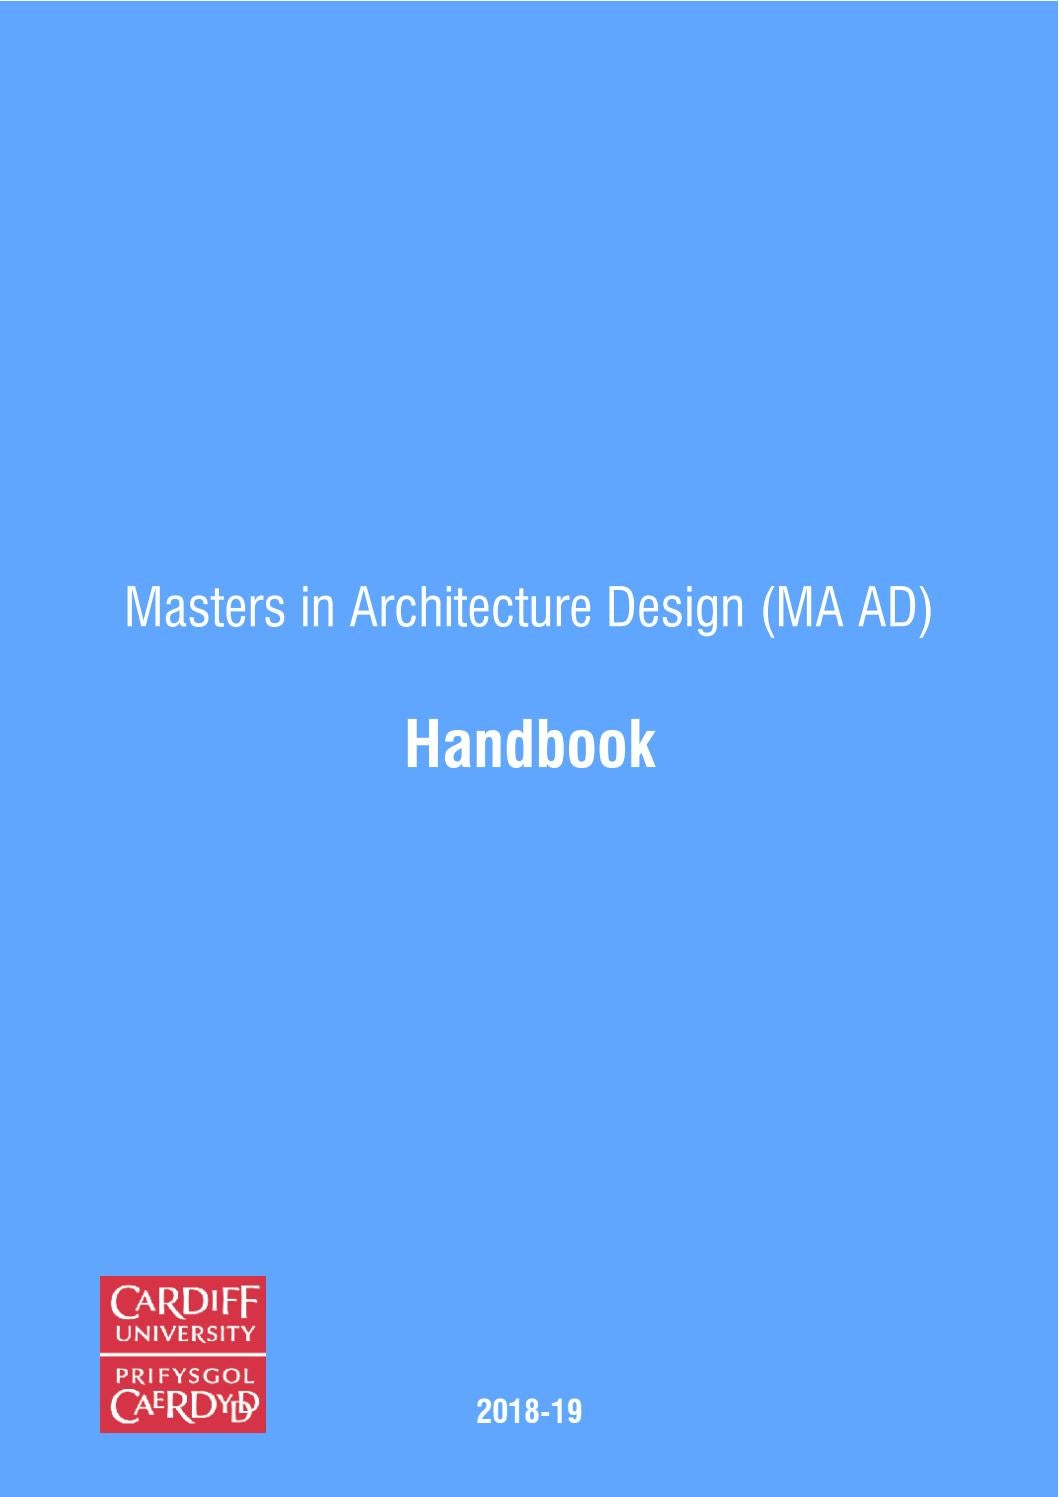 Welsh School of Architecture (WSA)  Masters in Architecture